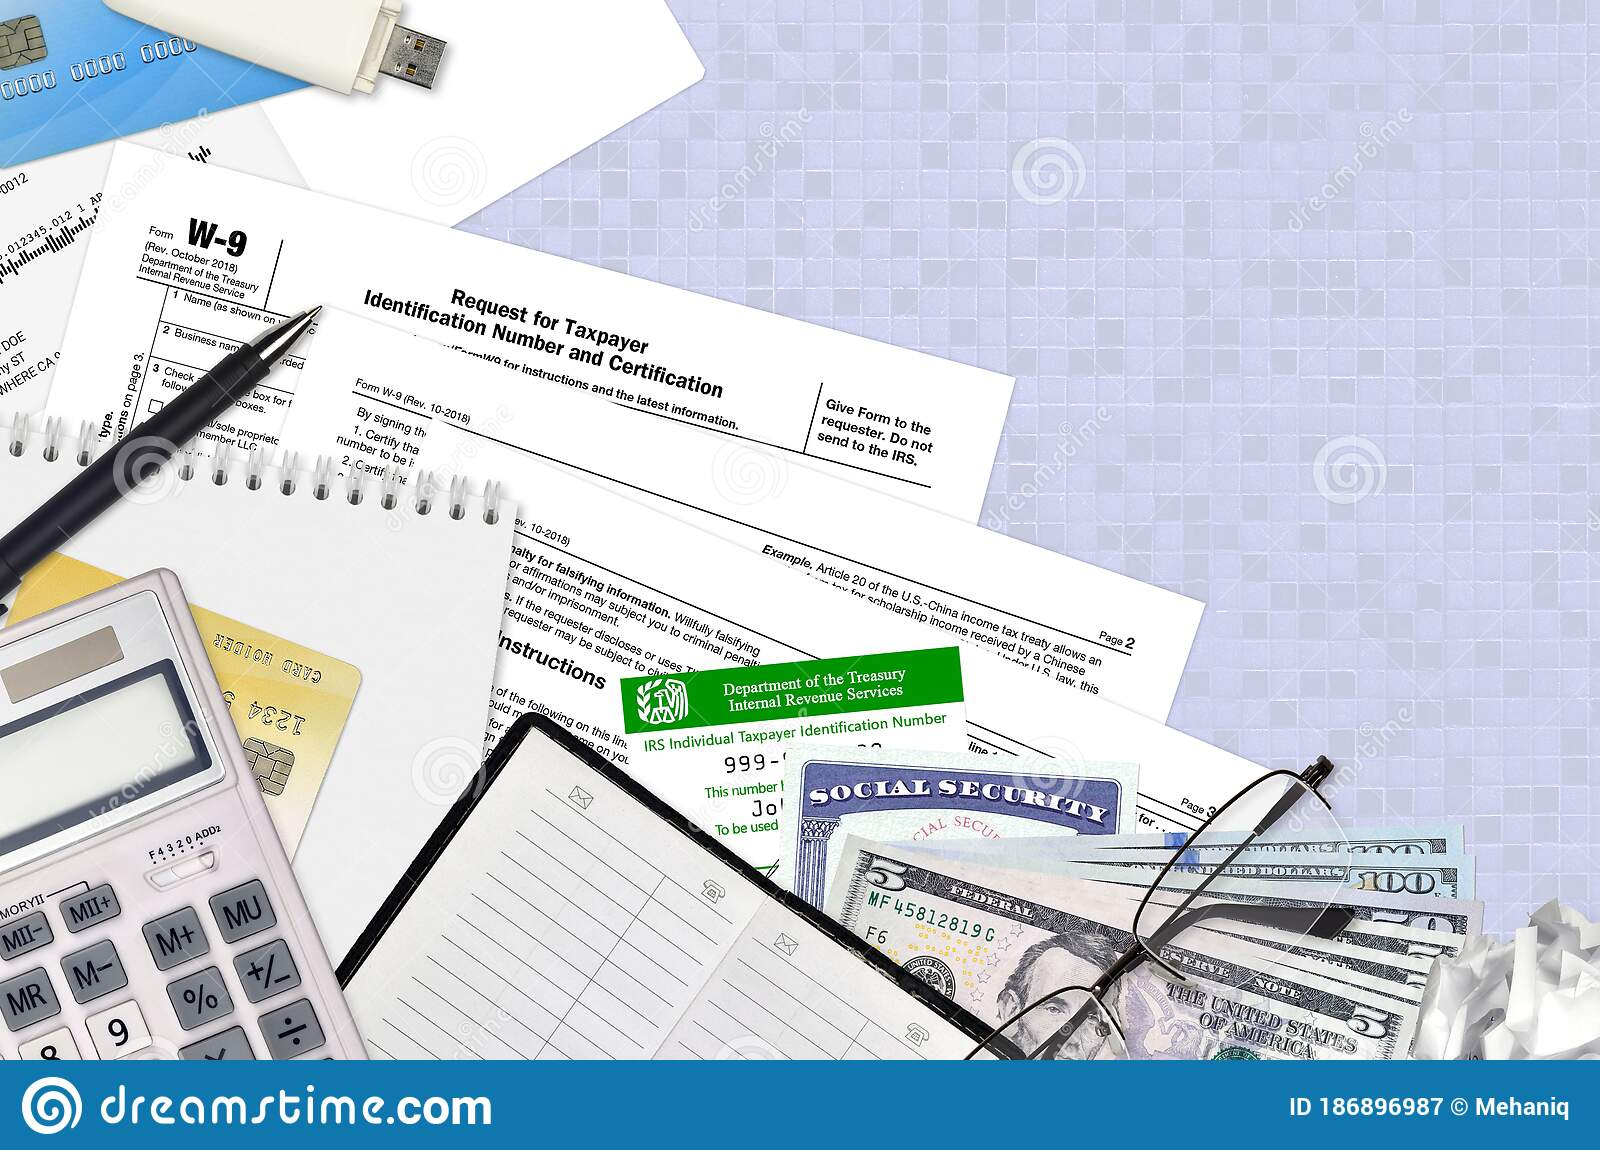 Irs Form W-9 Request For Taxpayer Identification Number And within Irs W-9 2021